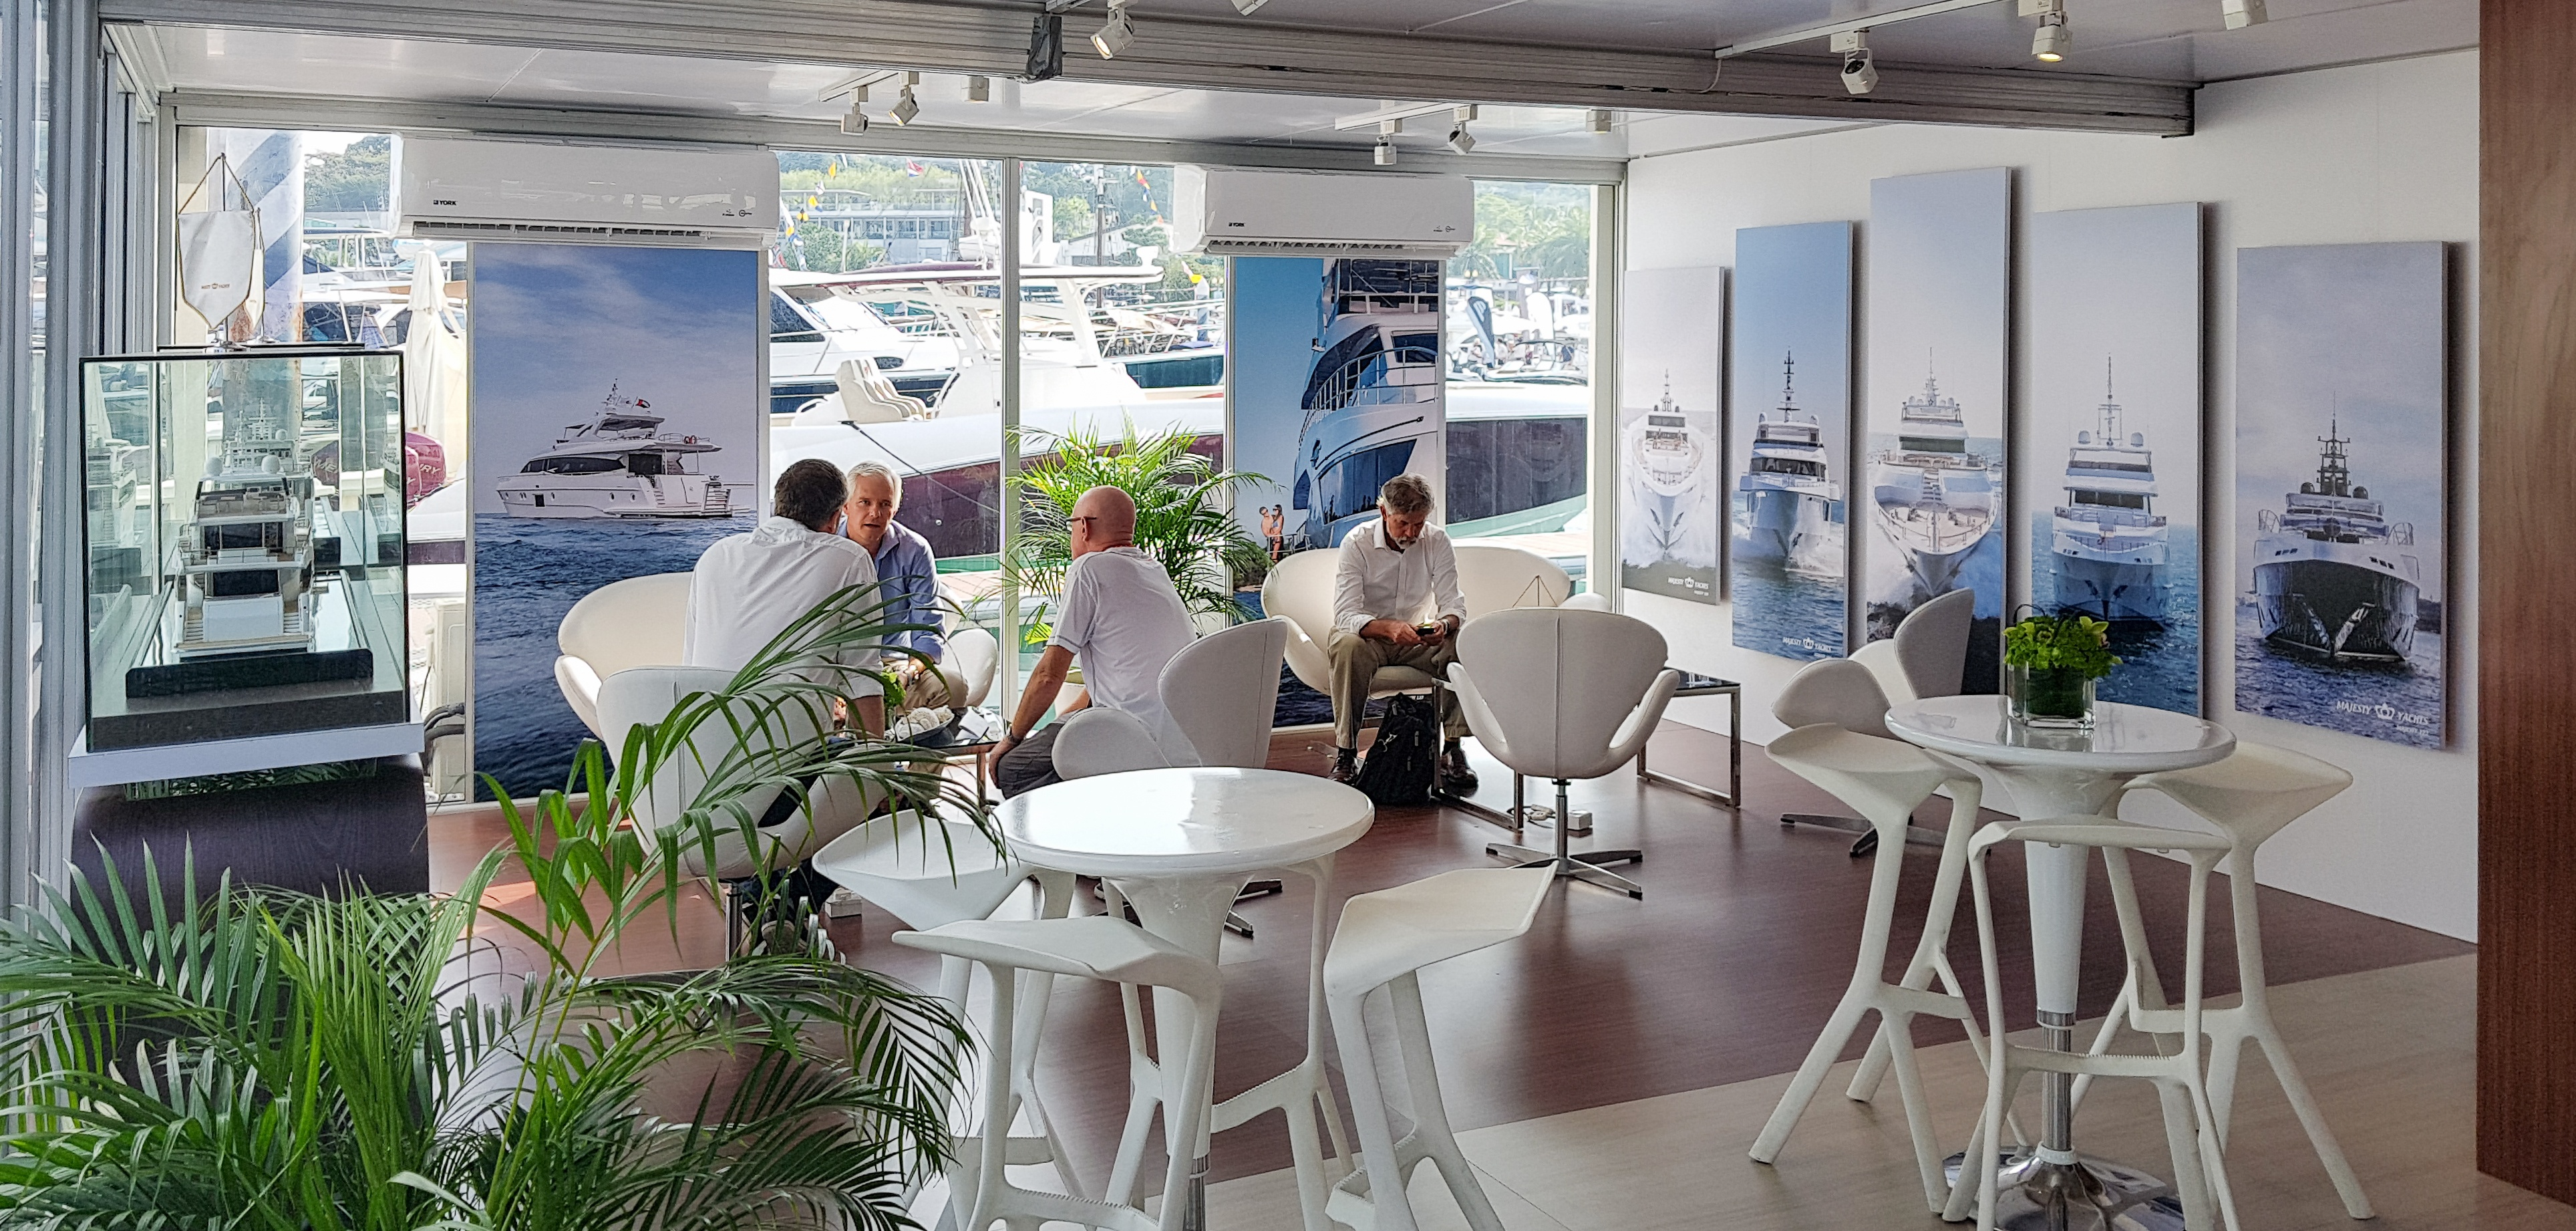 Gulf Craft at Singapore Yacht Show 2018 Day 2 (2).jpg